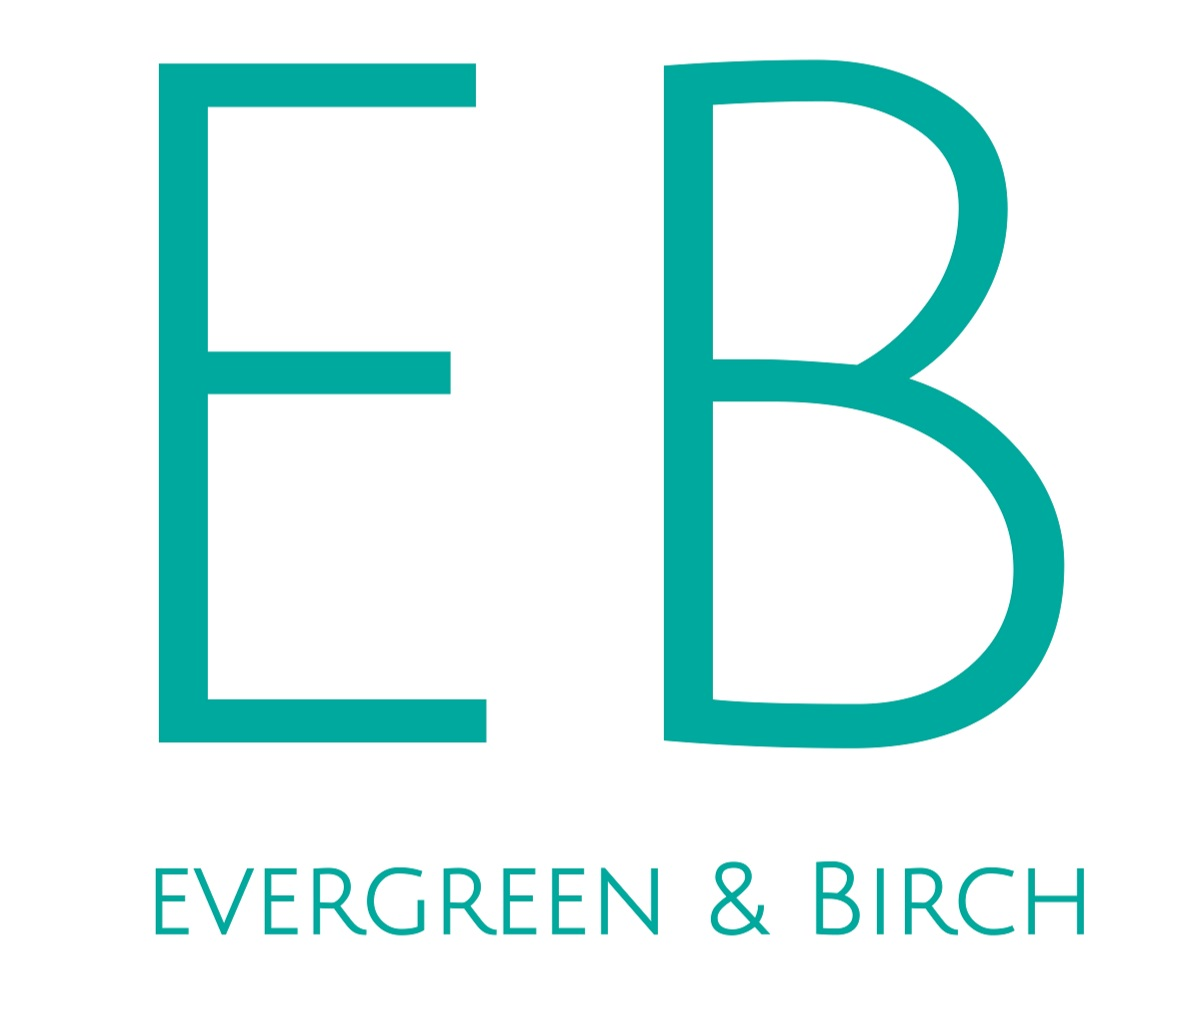 Evergreen & Birch